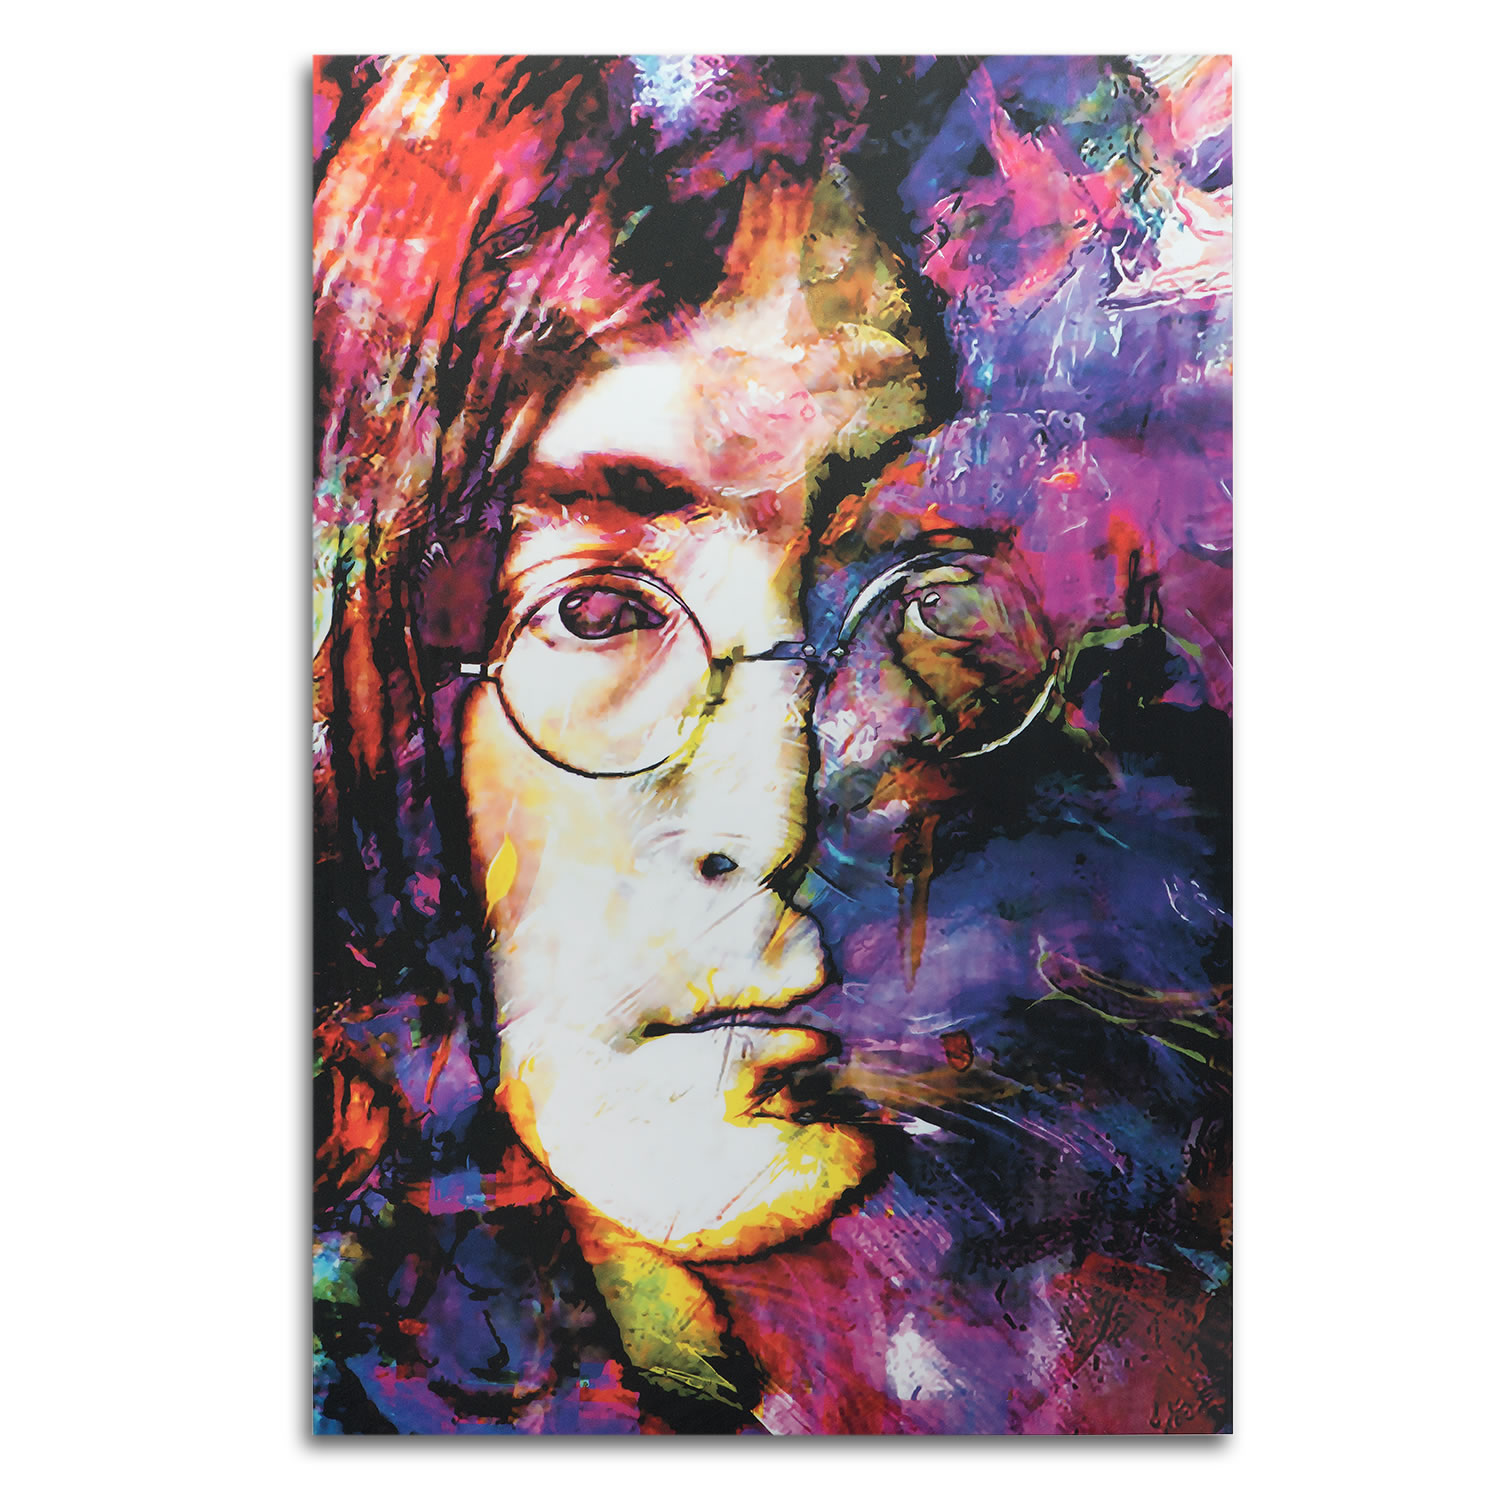 John Lennon Study 2 | Pop Art Beatles Painting by Mark Lewis, Signed & Numbered Limited Edition - ML0004